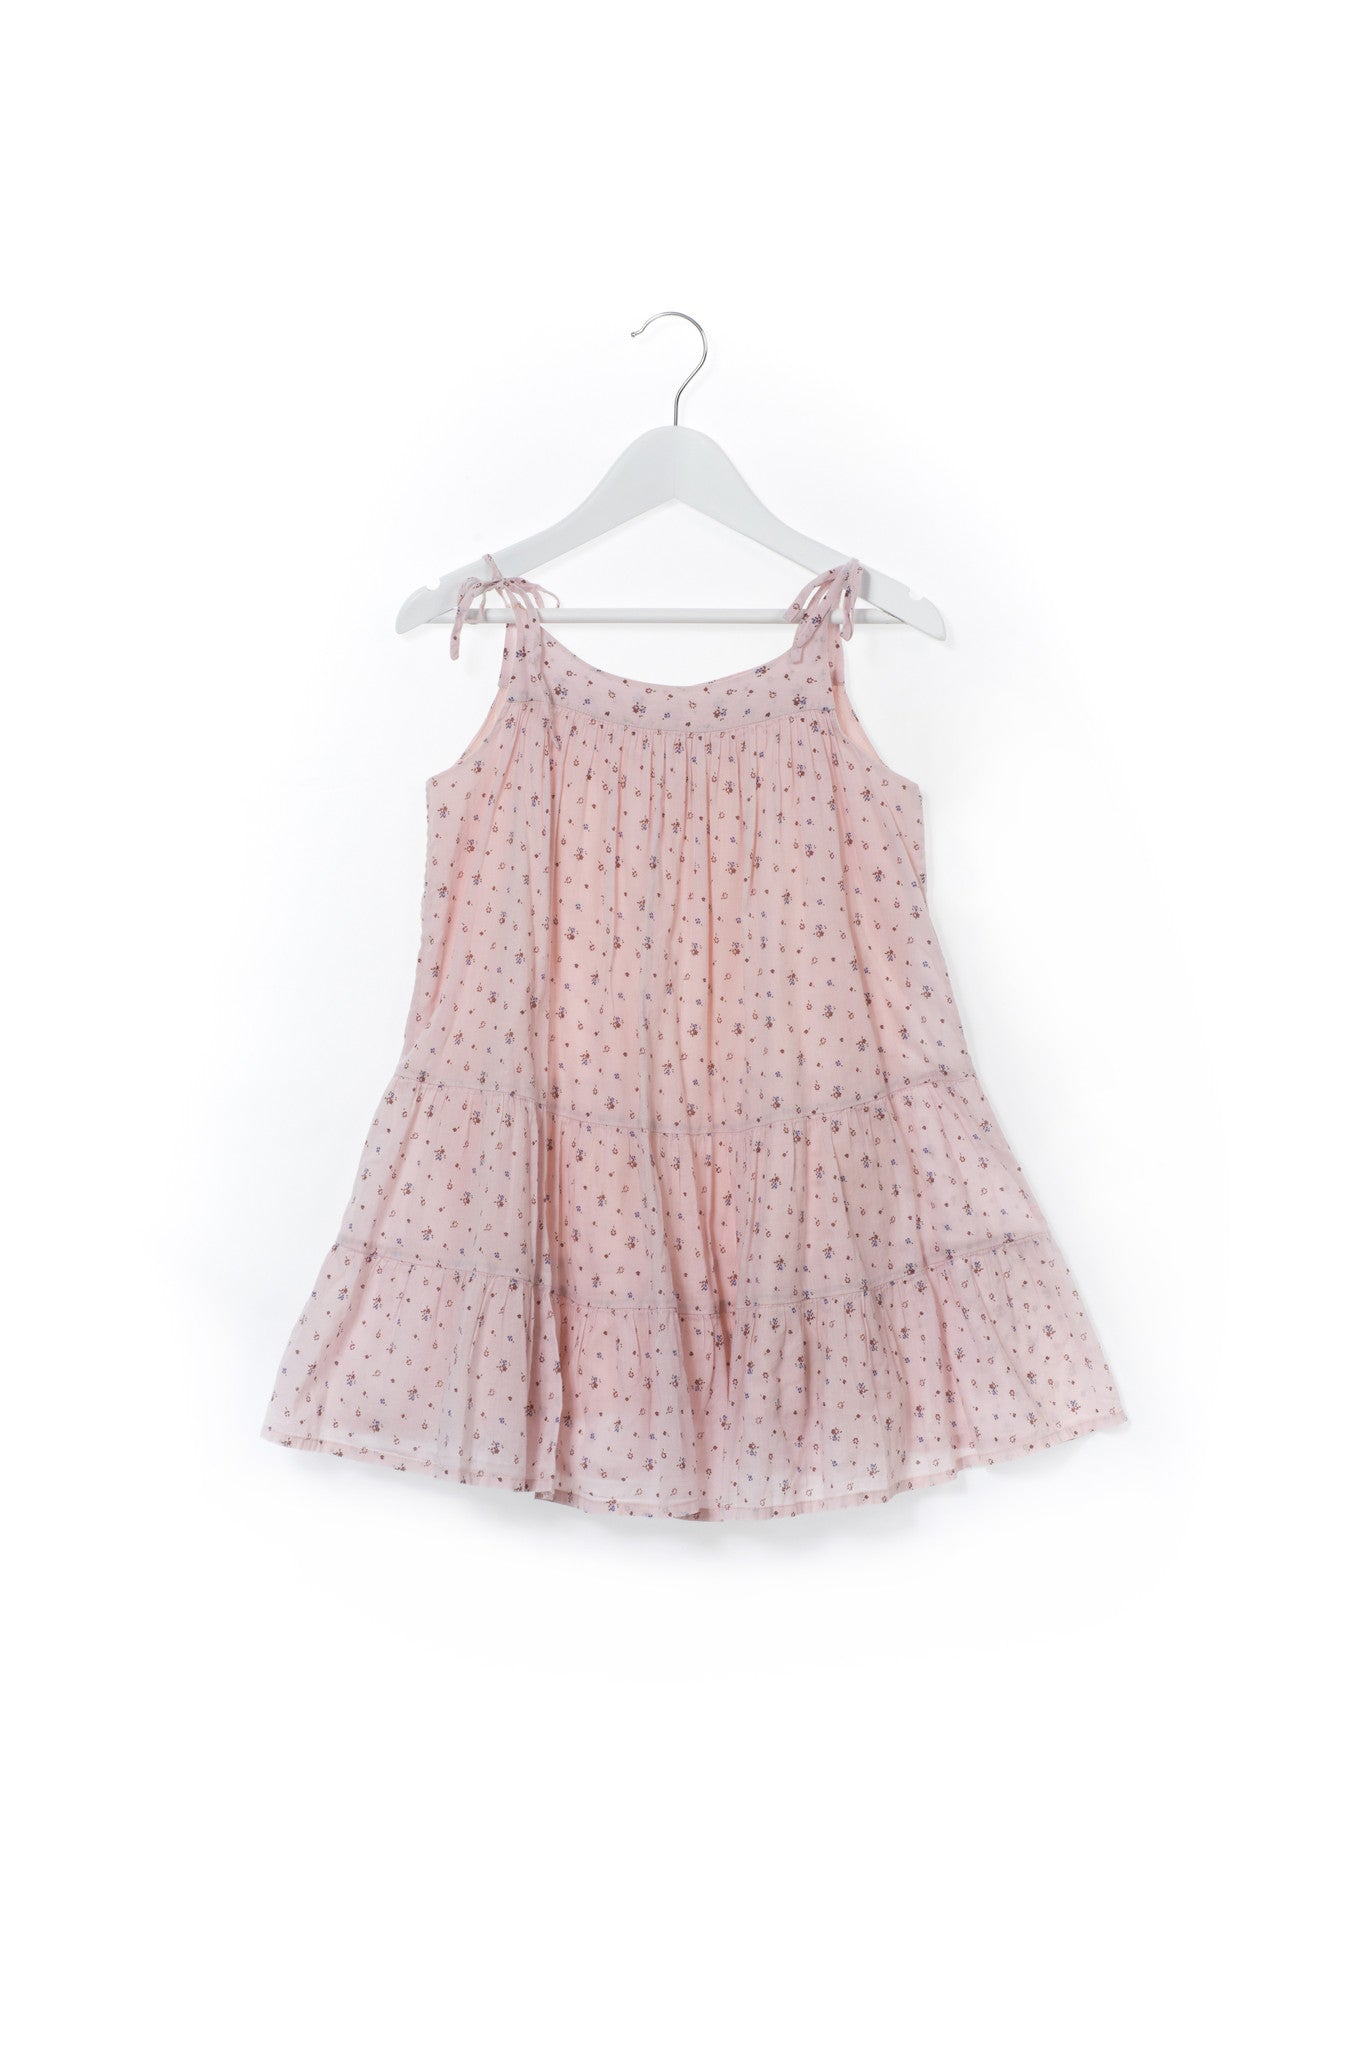 Dress 6T, Bonpoint at Retykle - Online Baby & Kids Clothing Up to 90% Off